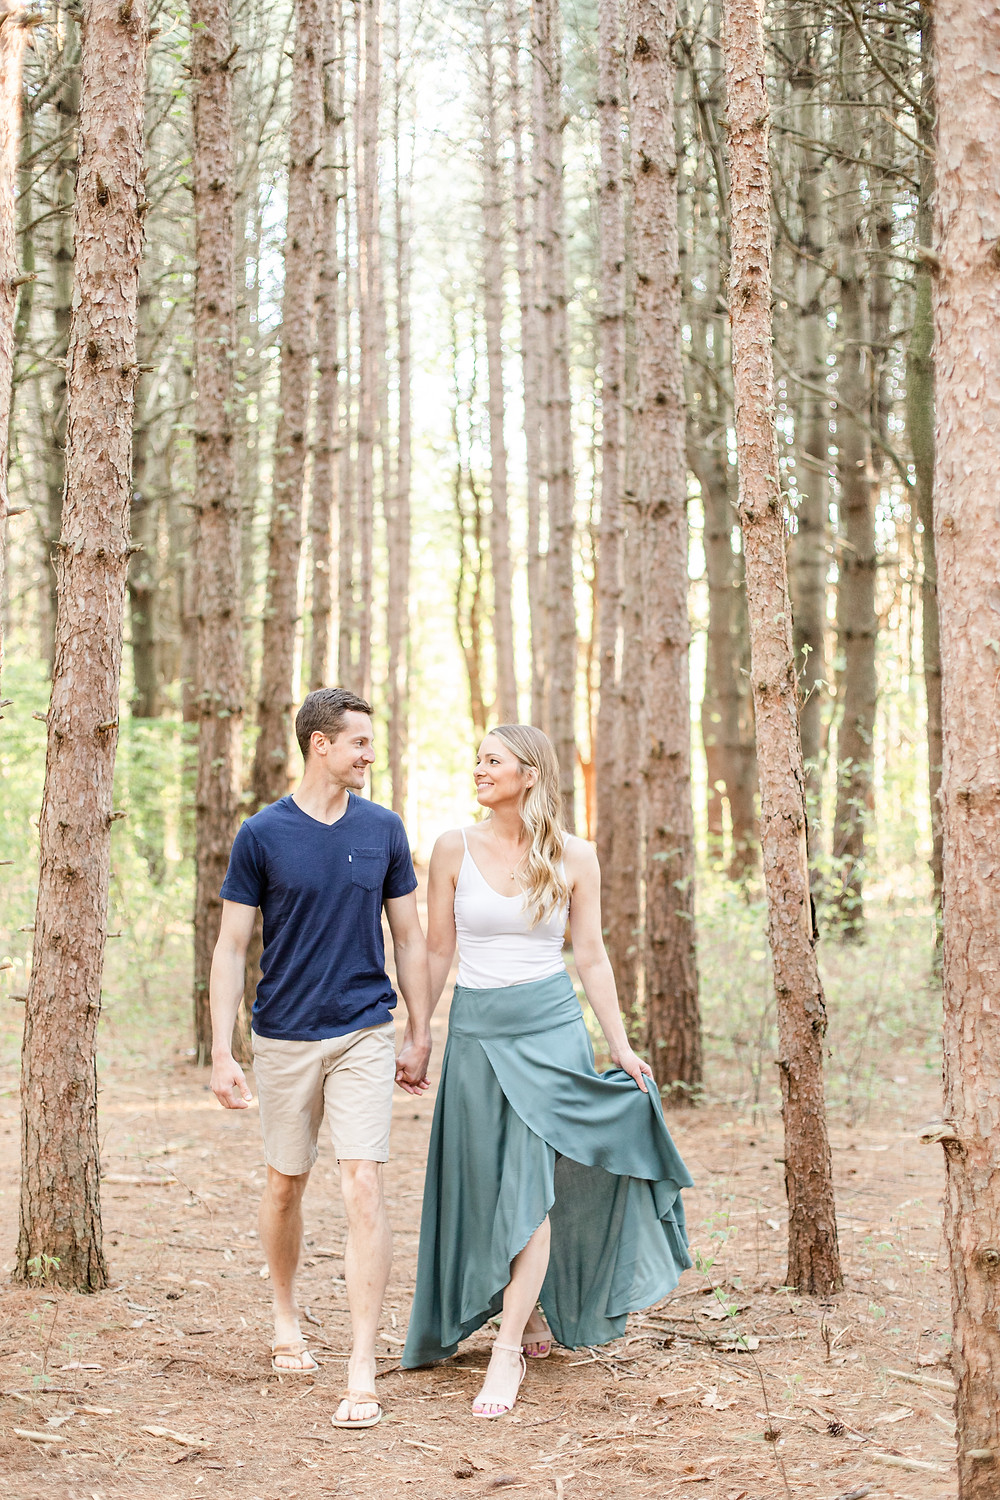 Josh and Andrea wedding photography husband and wife photographer team michigan Al Sabo Land Preserve engagement pictures session photo shoot fiance woods field walking